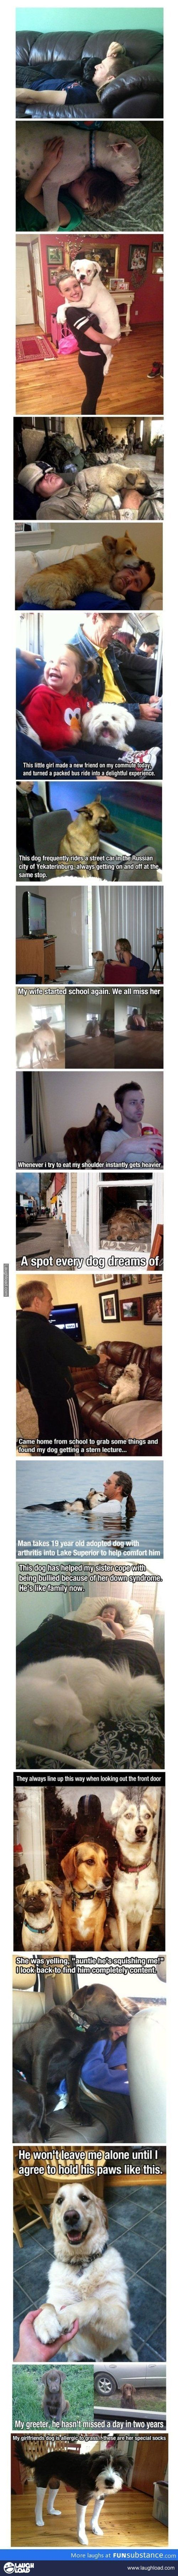 best a images on pinterest cutest animals dog